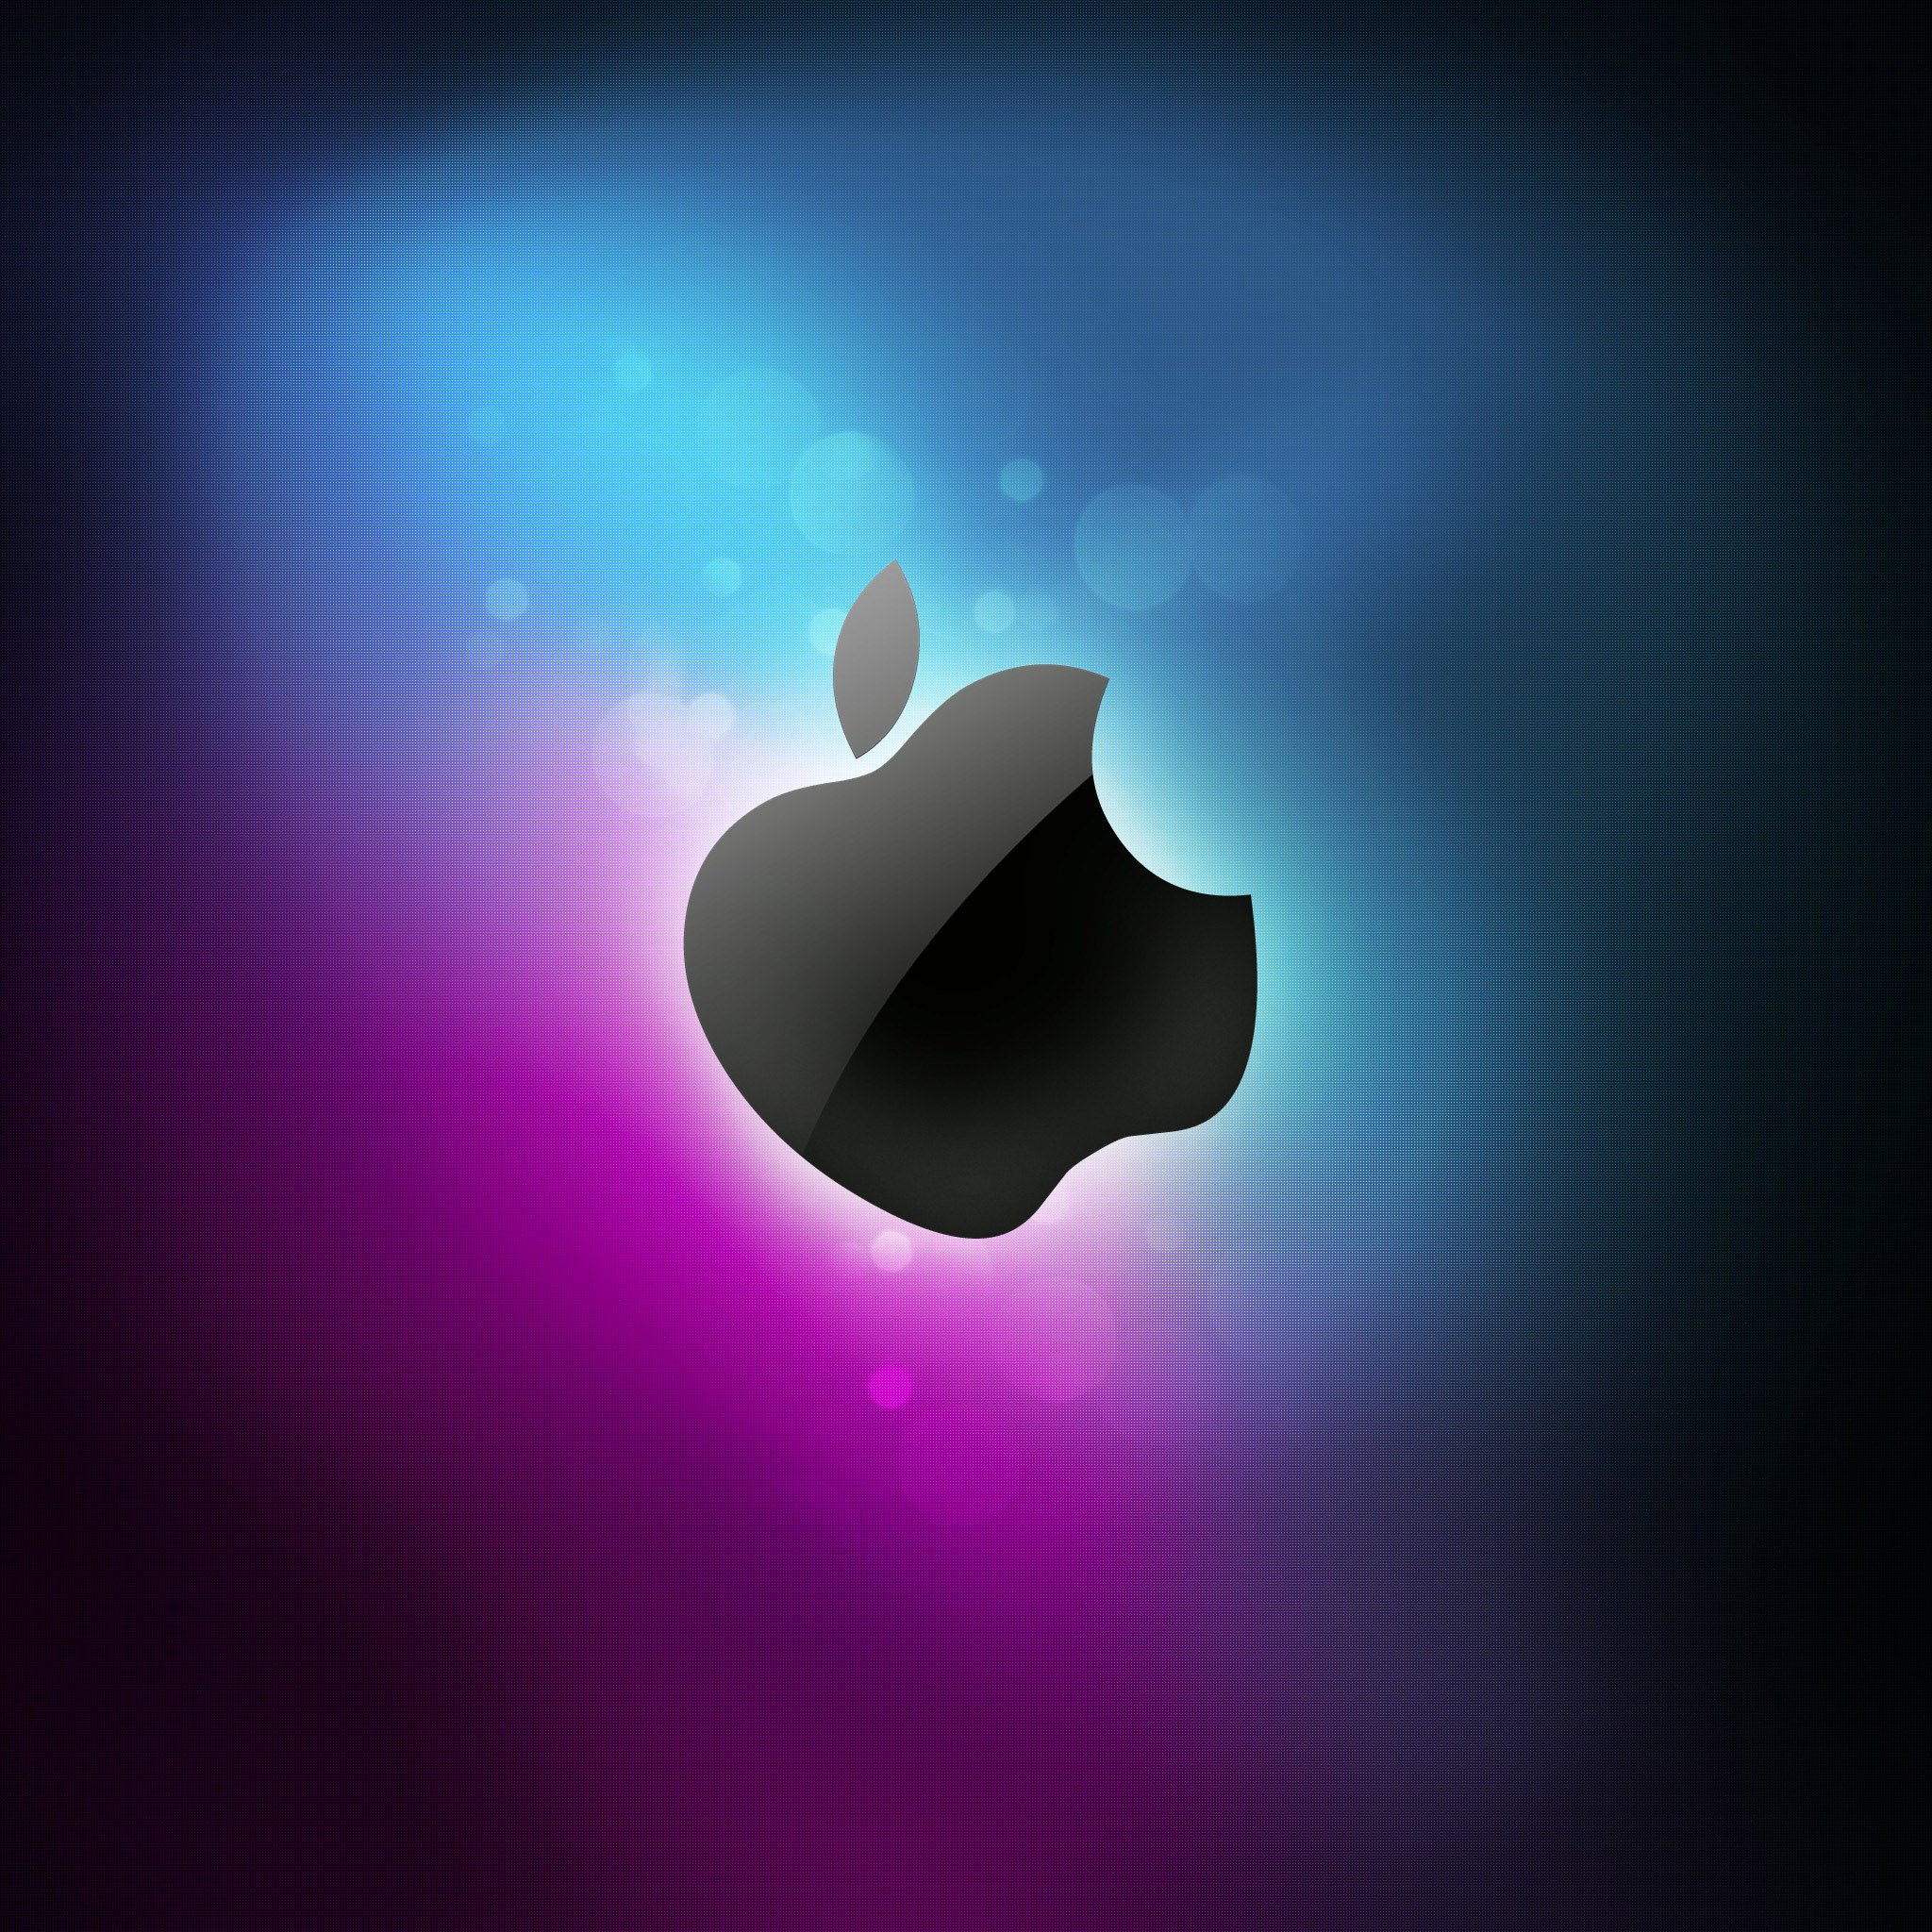 iPad Wallpapers HD apple logo   Apple iPad iPad 2 iPad mini 2048x2048